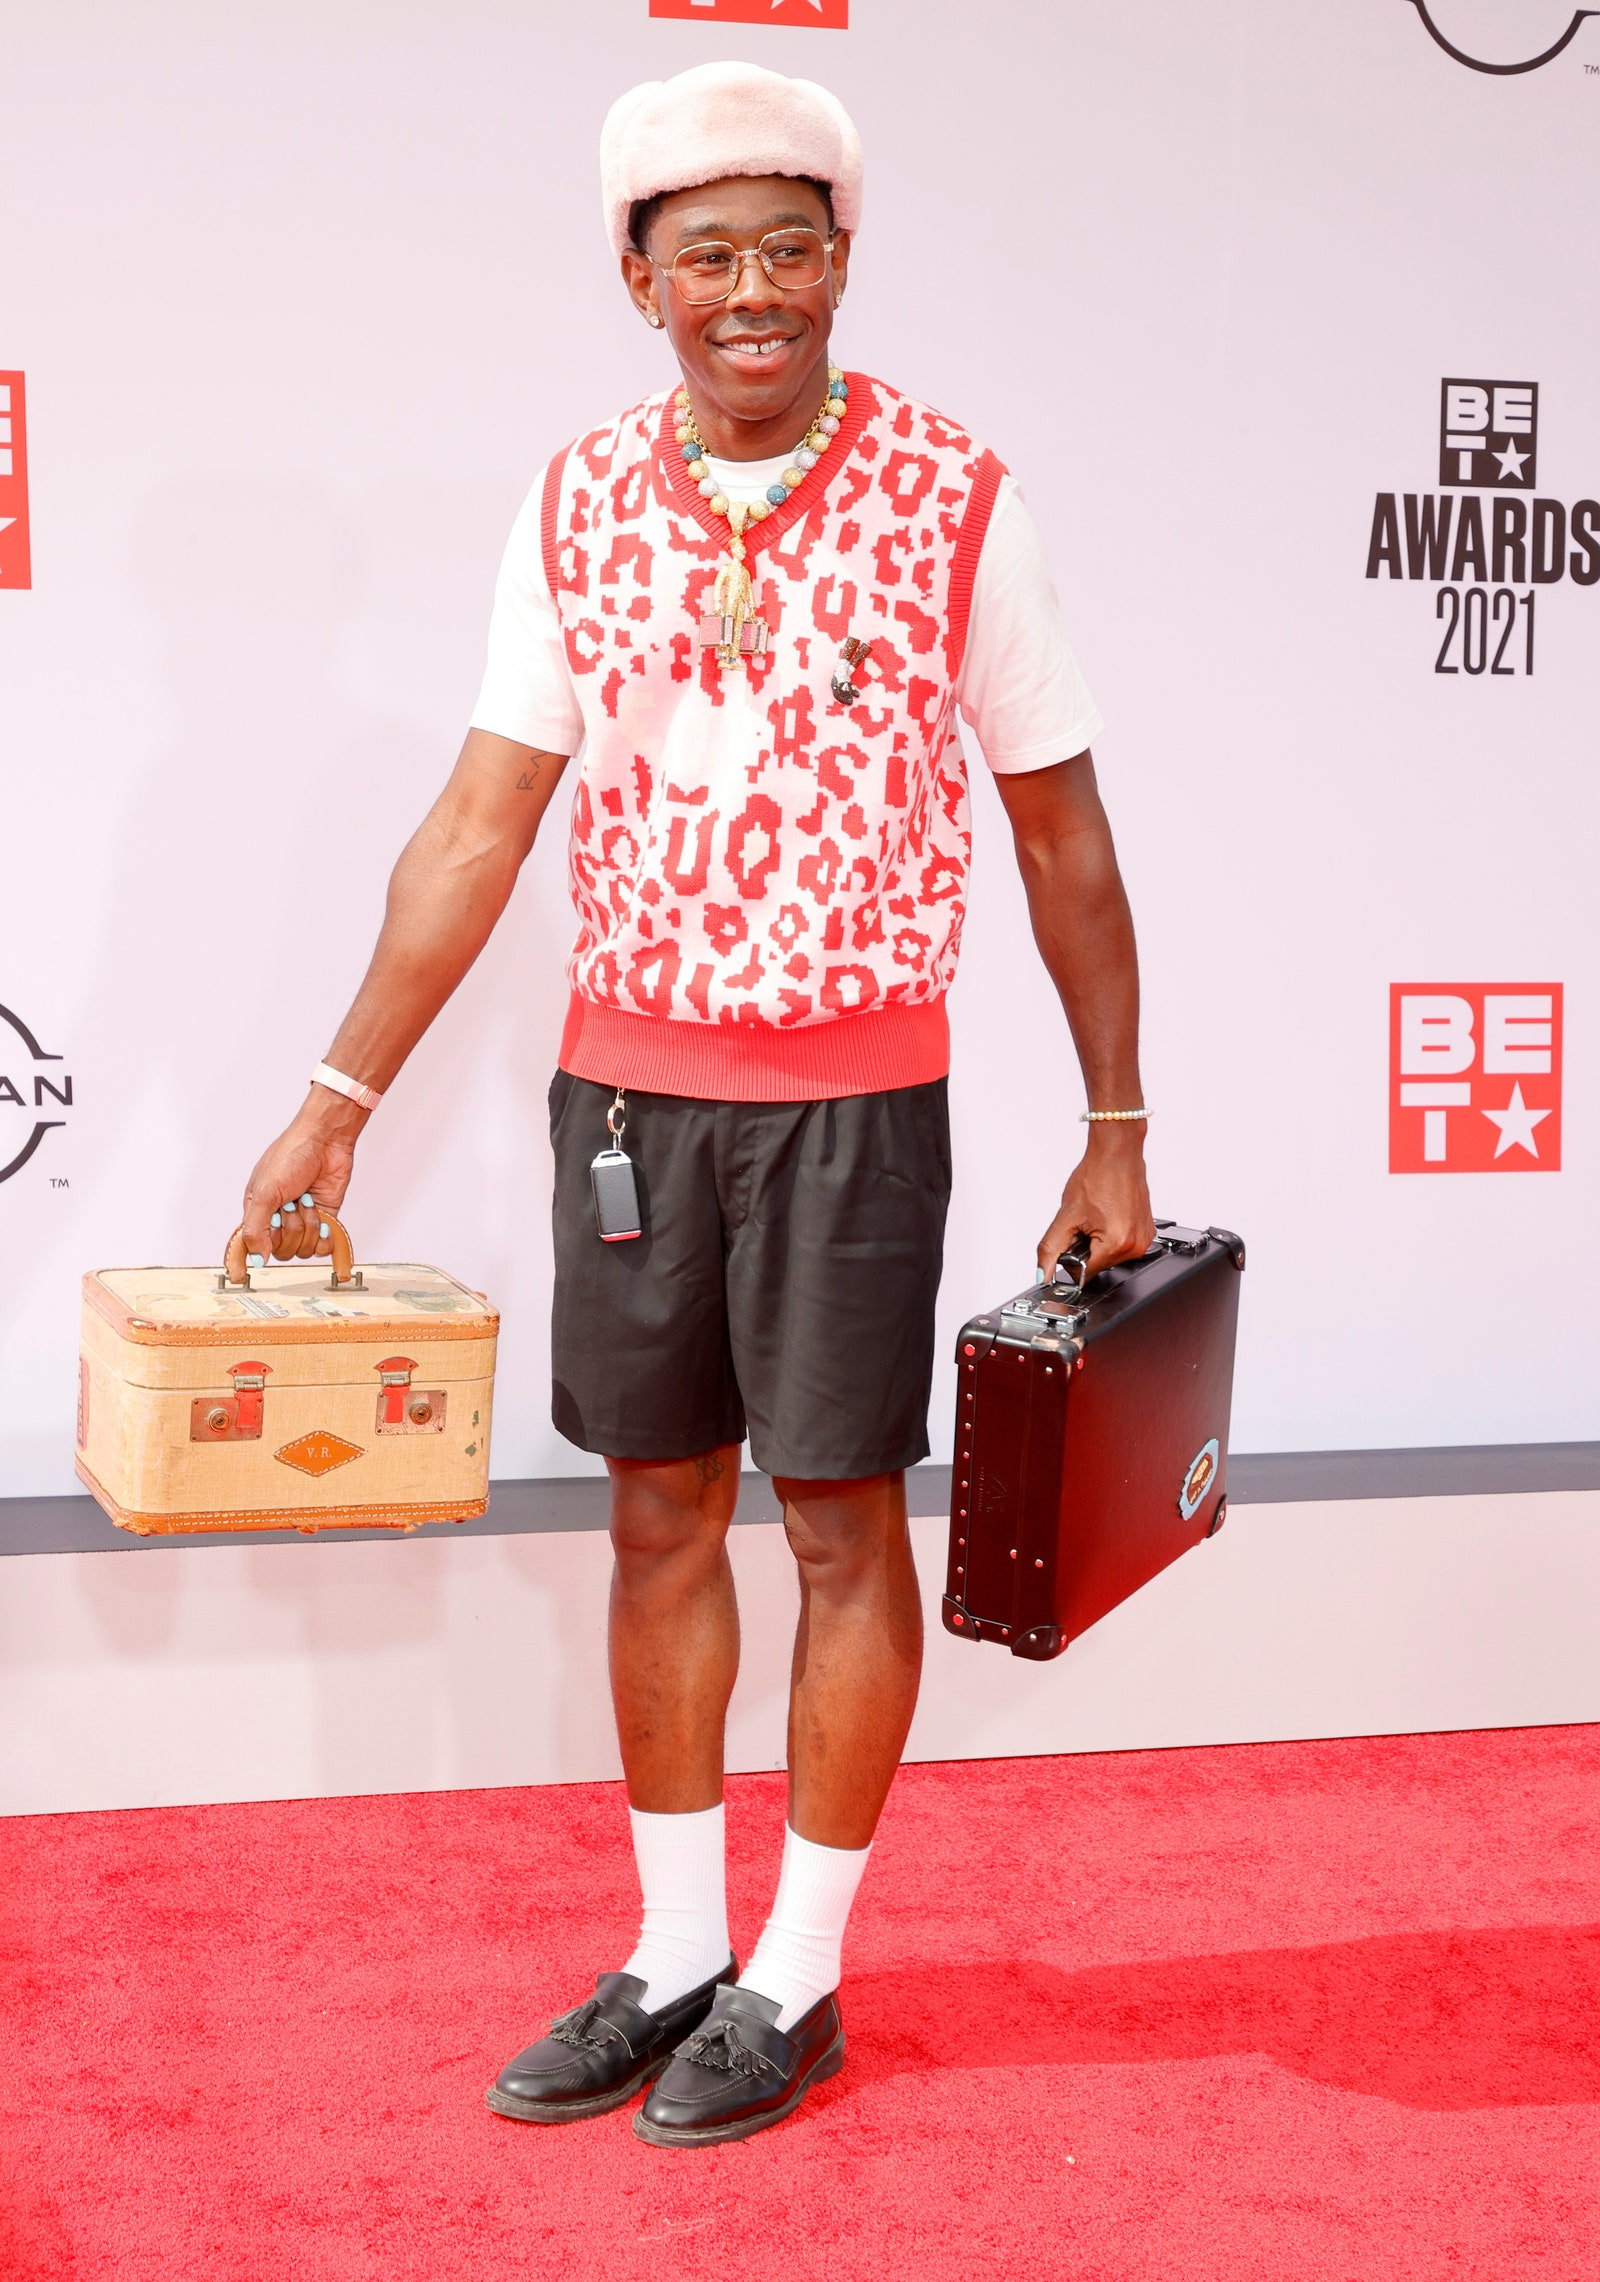 Image may contain Human Person Clothing Apparel Shorts Tyler The Creator Footwear Shoe and Bag